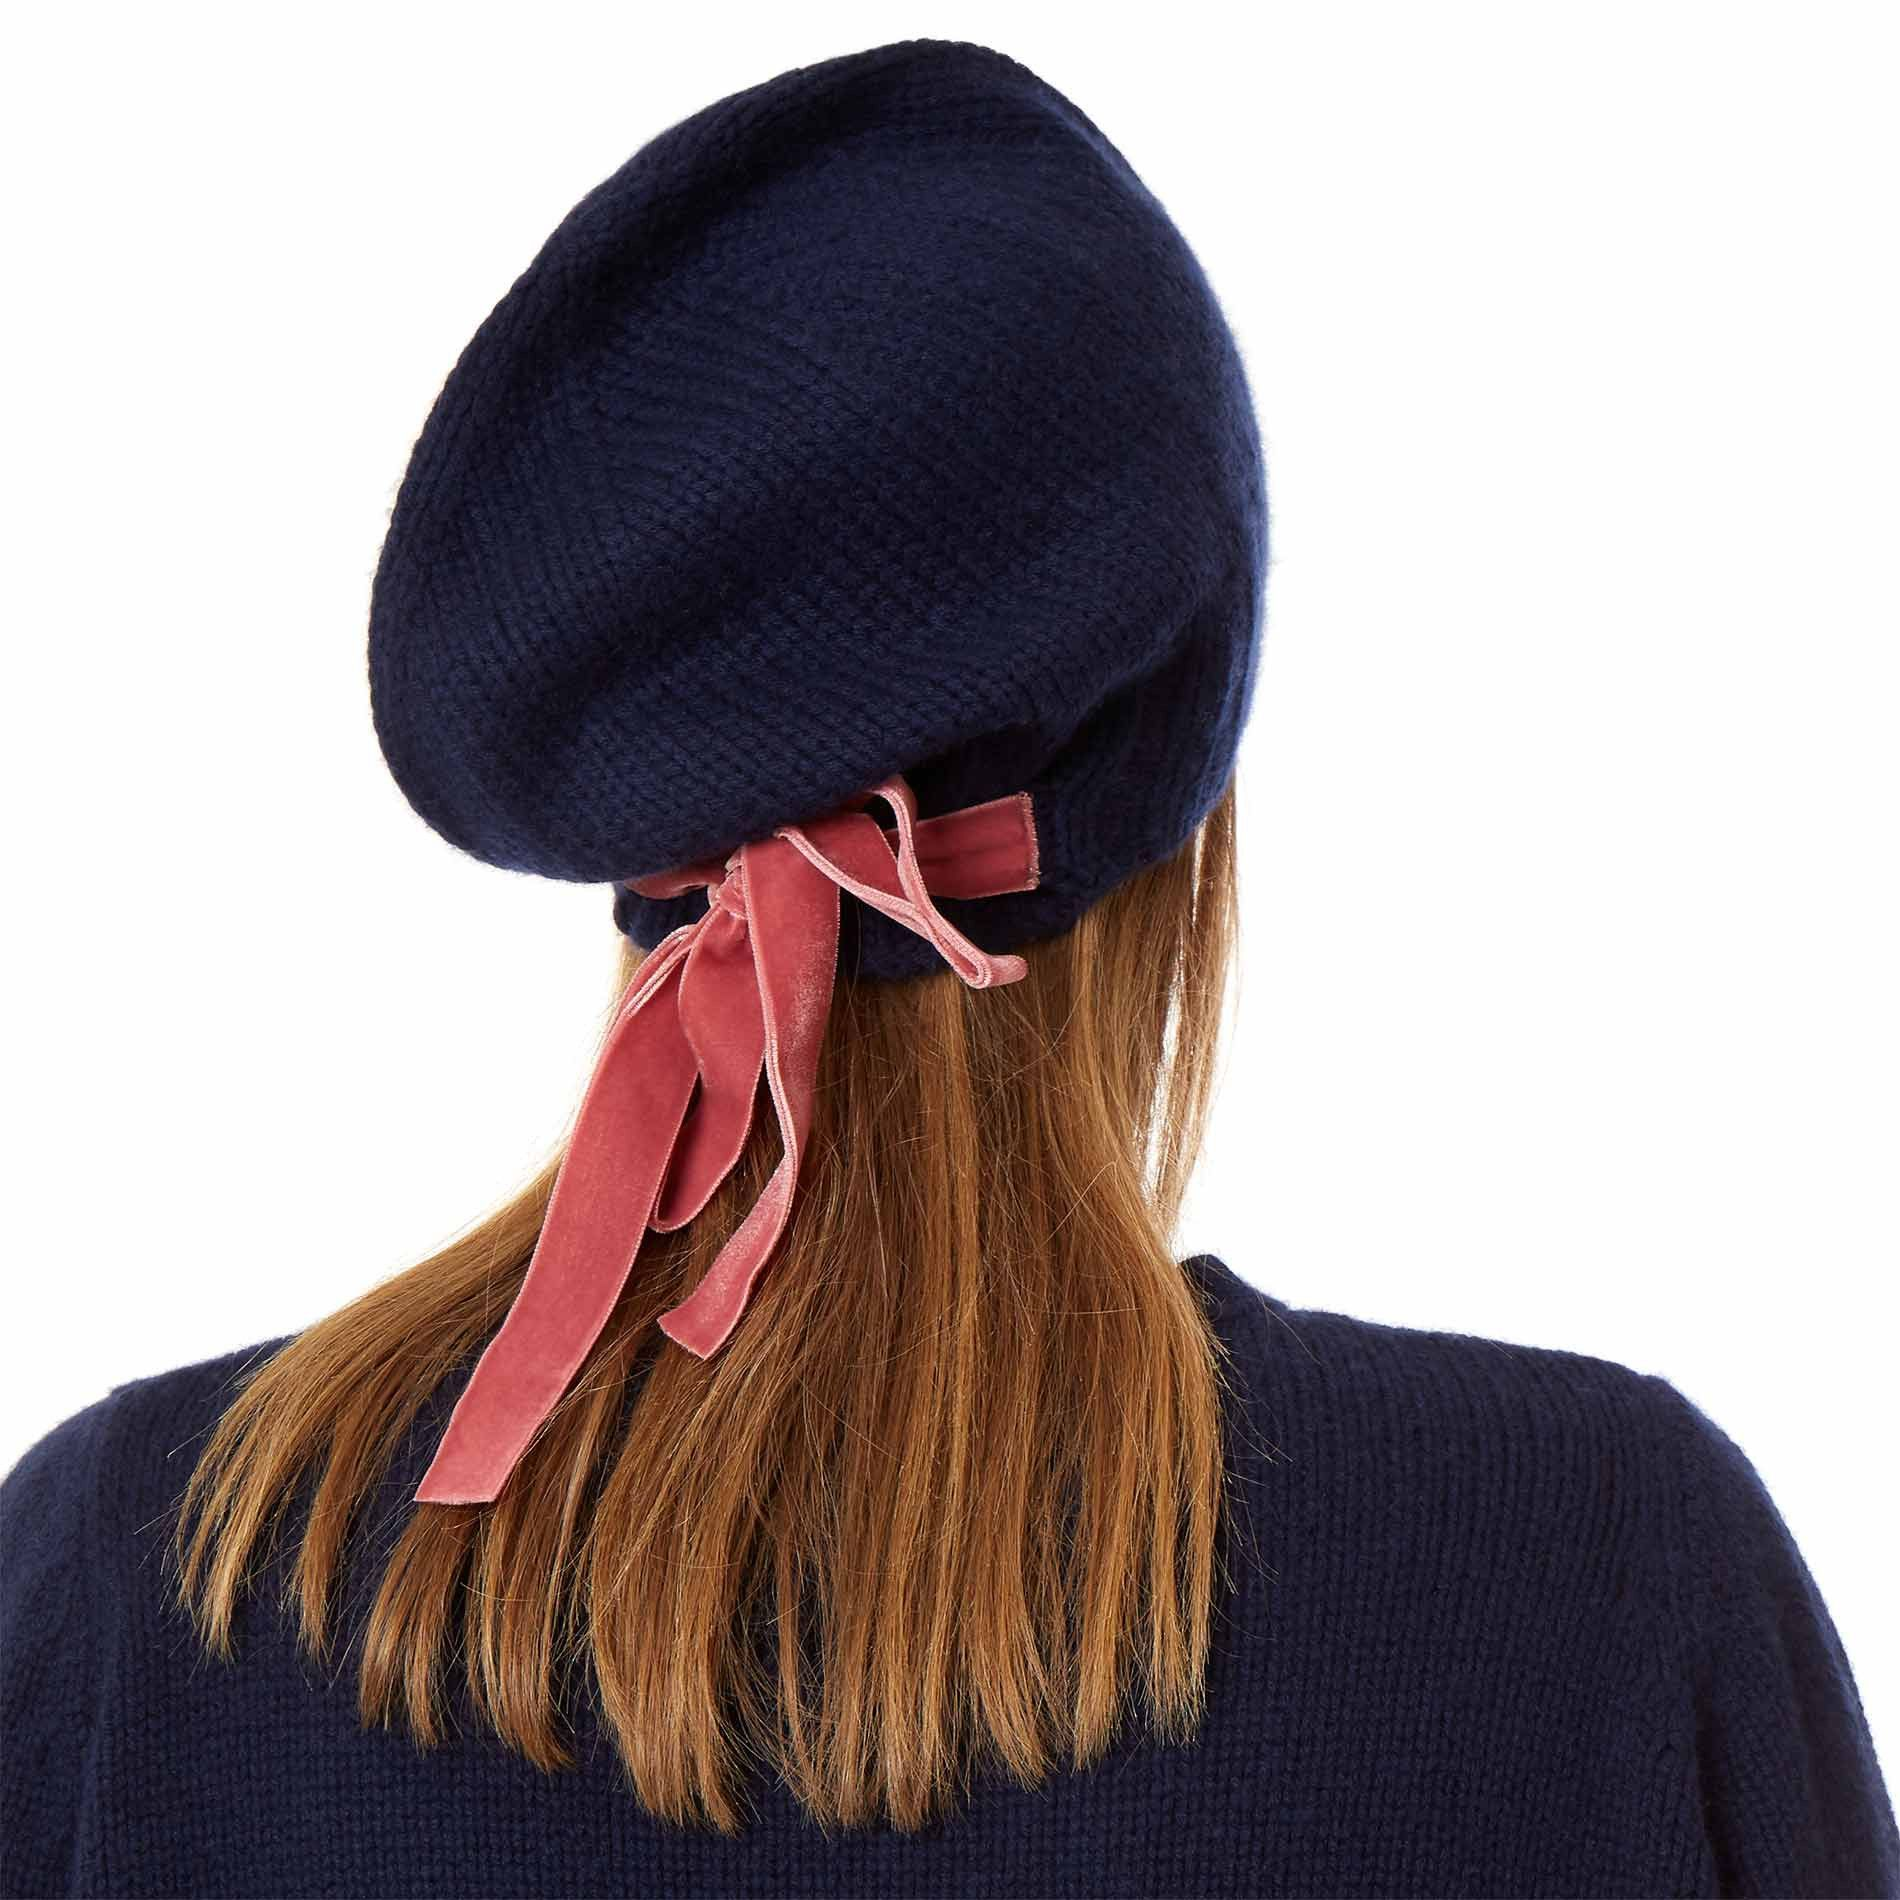 934de9c8d7b An oversized beanie made from super-soft cashmere and wool. Featuring  double-sided pink velvet ribbon ties for adding a charming bow to your hat.